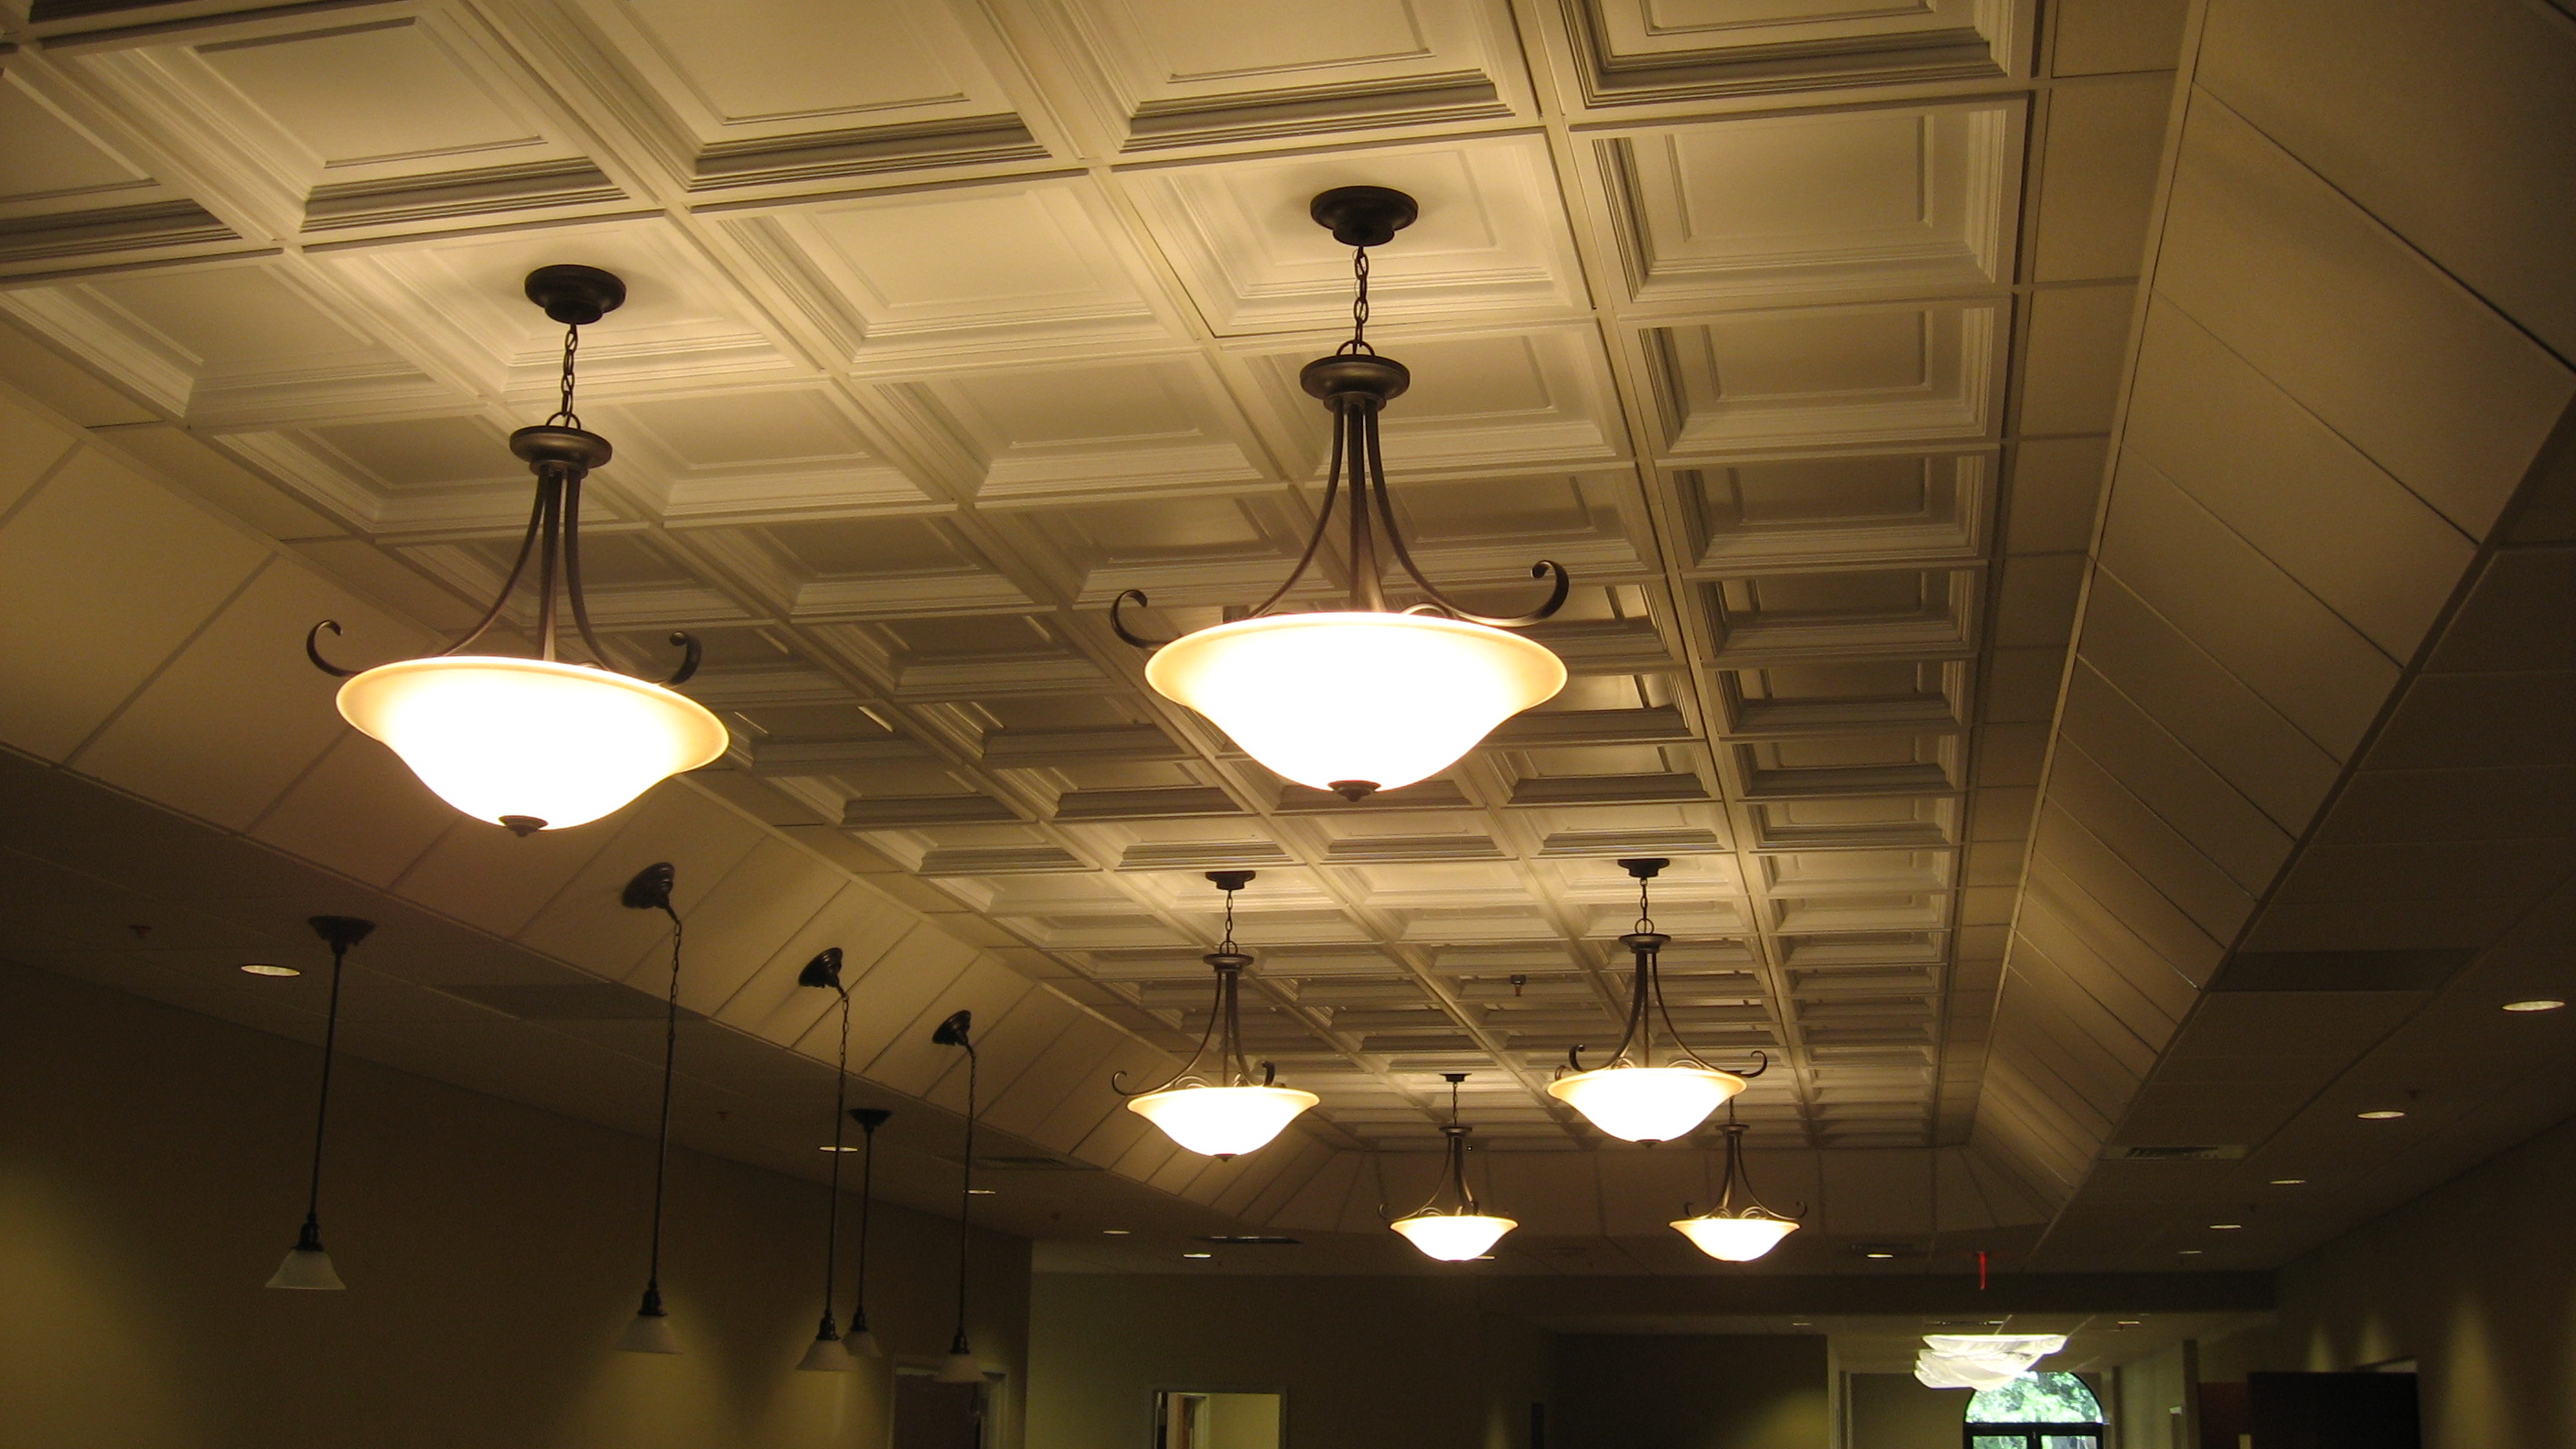 Ceiling stunning coffered ceiling for charming ceiling ideas coffered ceiling tiles with chandeliers for more beautiful ceiling doublecrazyfo Image collections